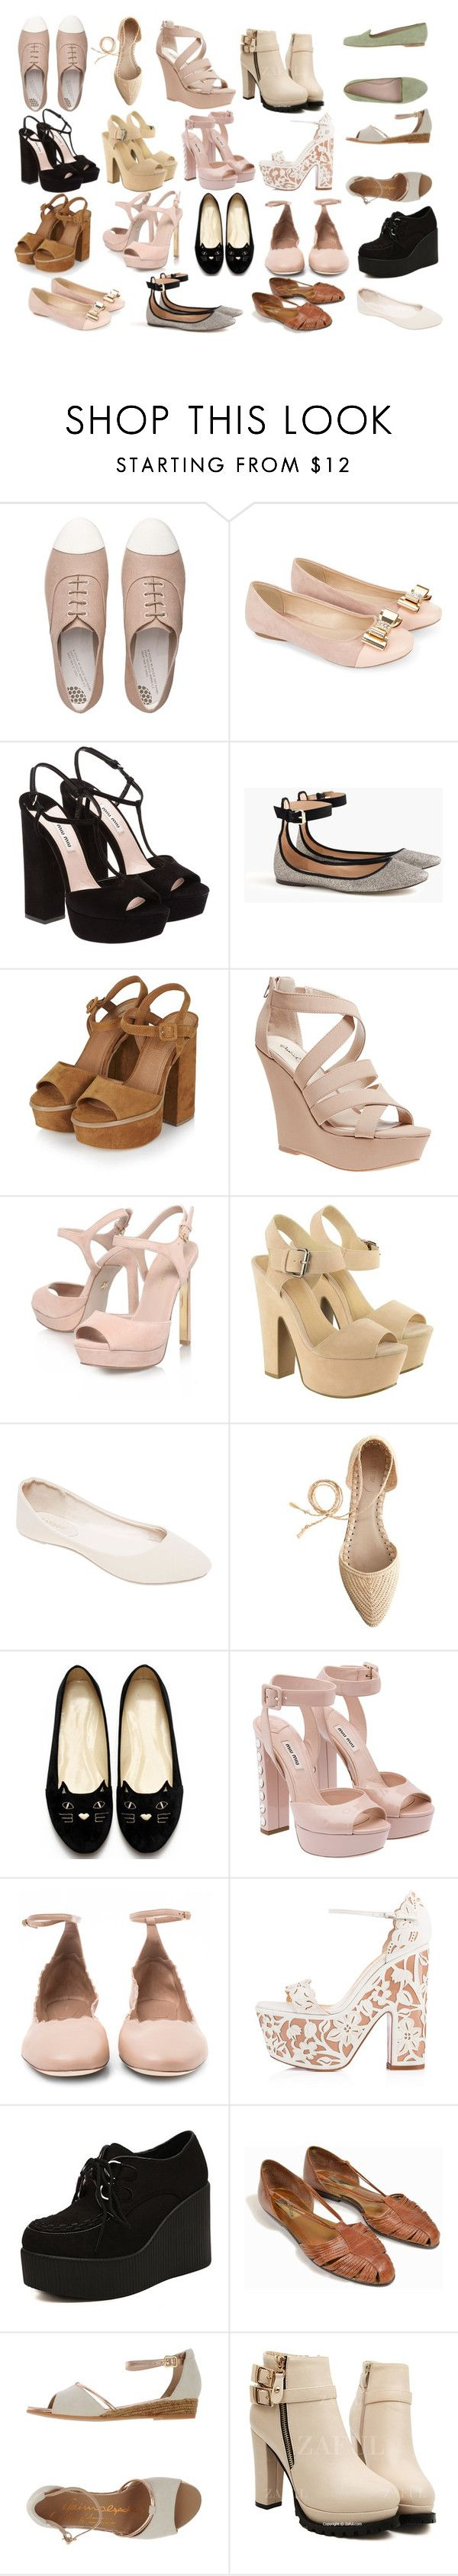 """Style Steal:Marzia Bisognin-Shoes"" by emnicole9 ❤ liked on Polyvore featuring FitFlop, Monsoon, Miu Miu, J.Crew, Topshop, Wet Seal, KG Kurt Geiger, Lipsy, Chloé and Christian Louboutin"